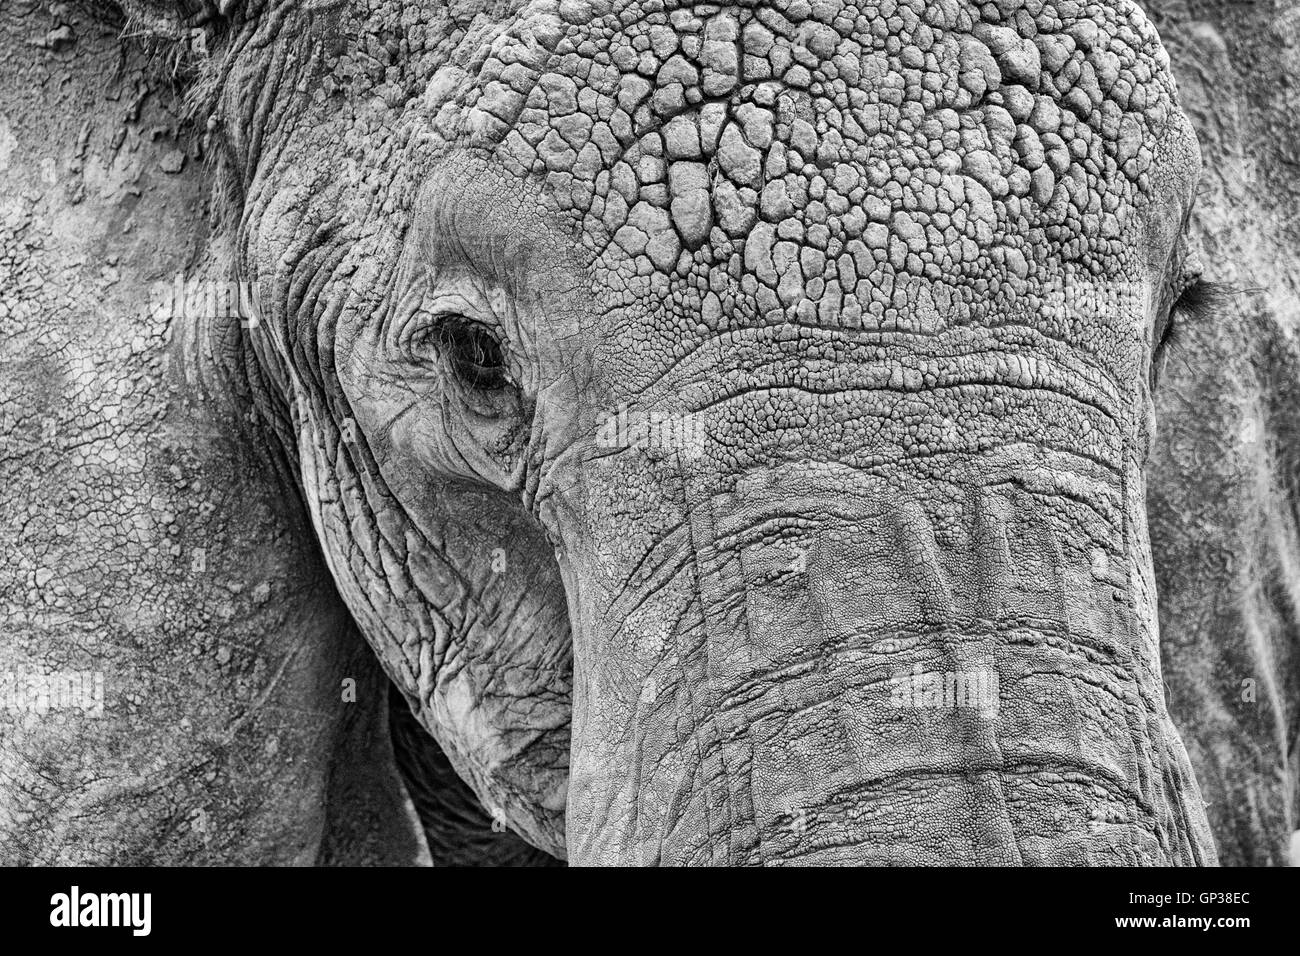 Black and white close up of an Elephants head showing texture of hide - Stock Image